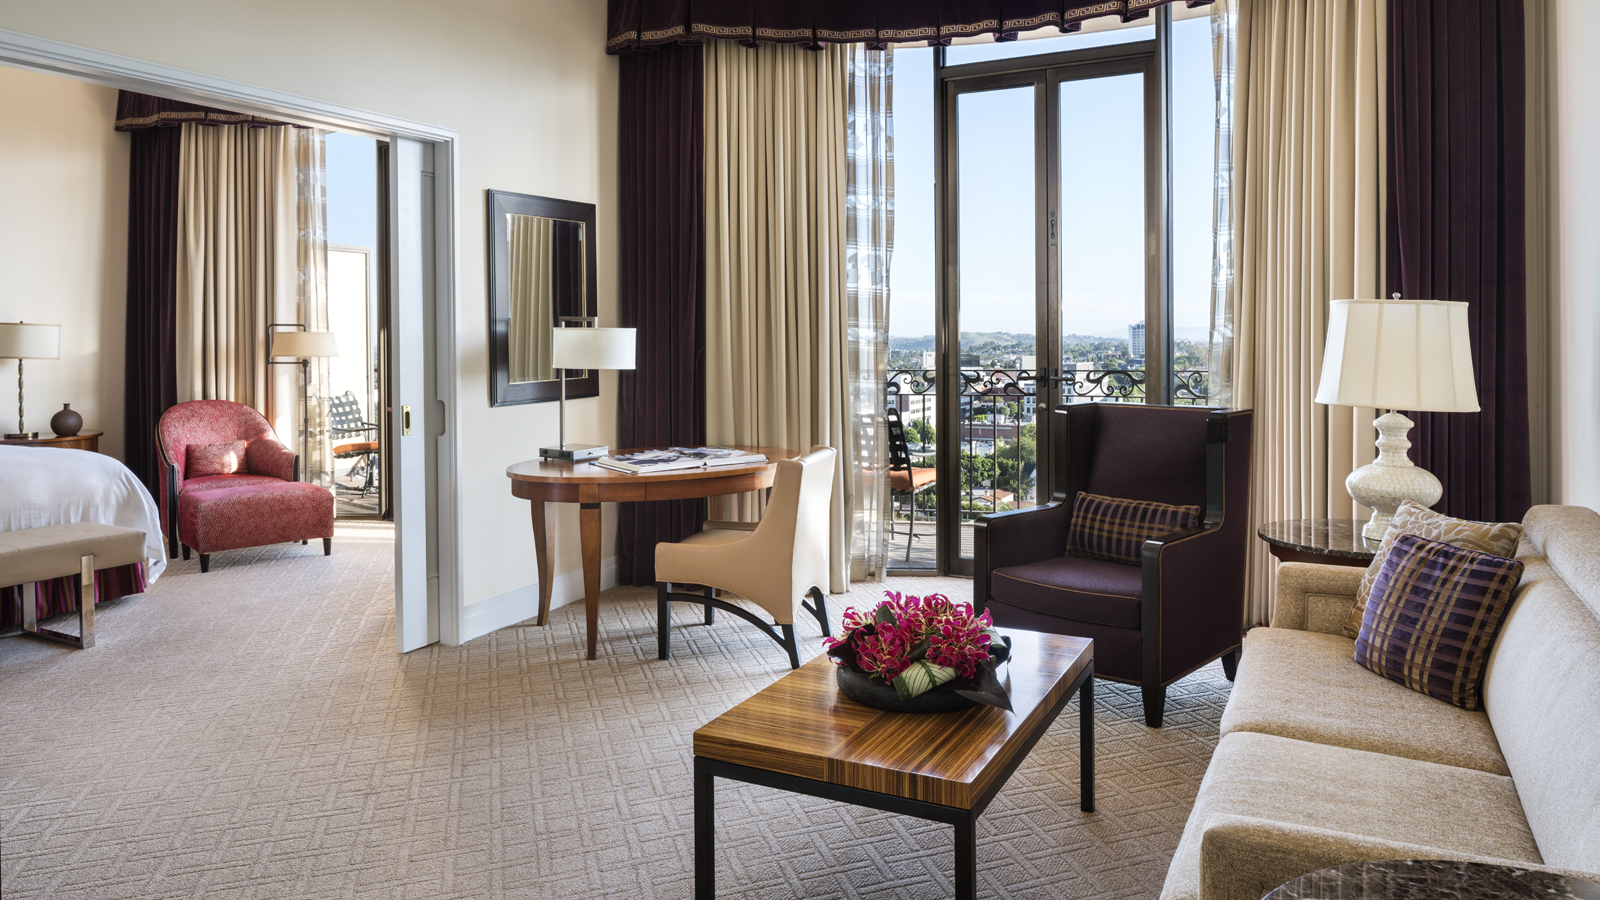 With This Offer Book A Two Night Stay In Select Rooms And Suites We Ll You Complimentary Third